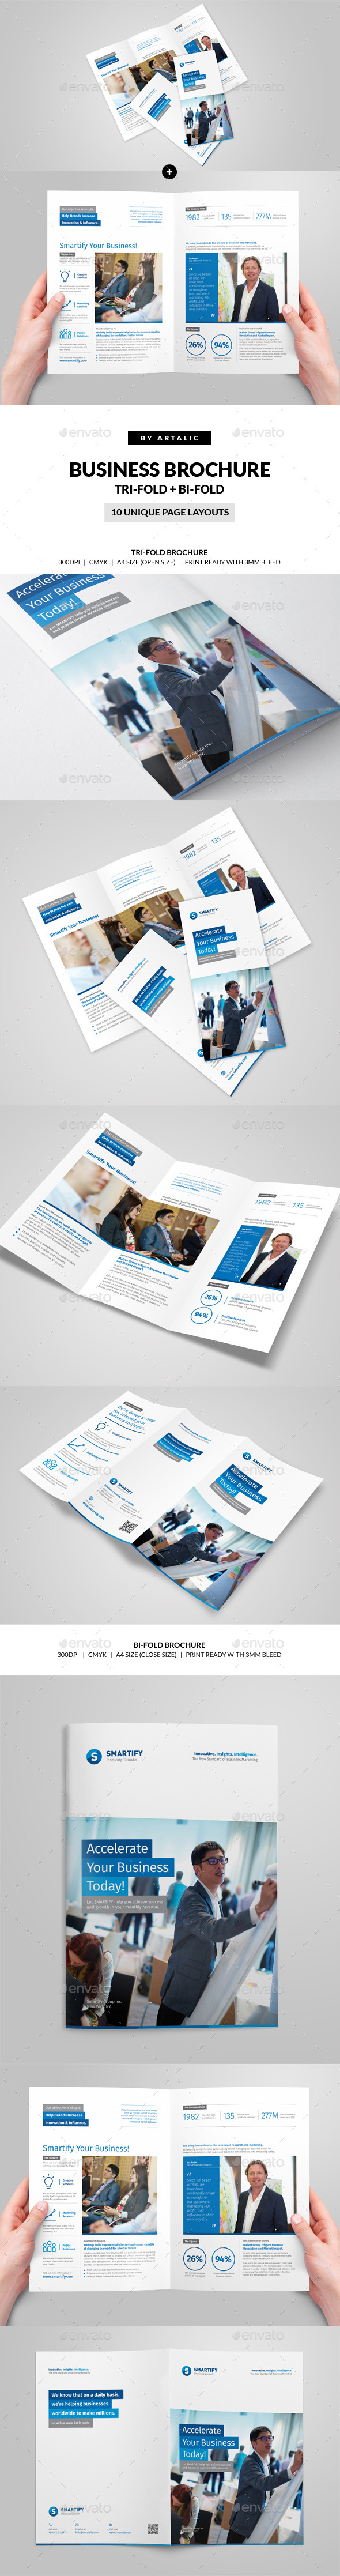 GraphicRiver Corporate Business Brochure 2-Format 11146319